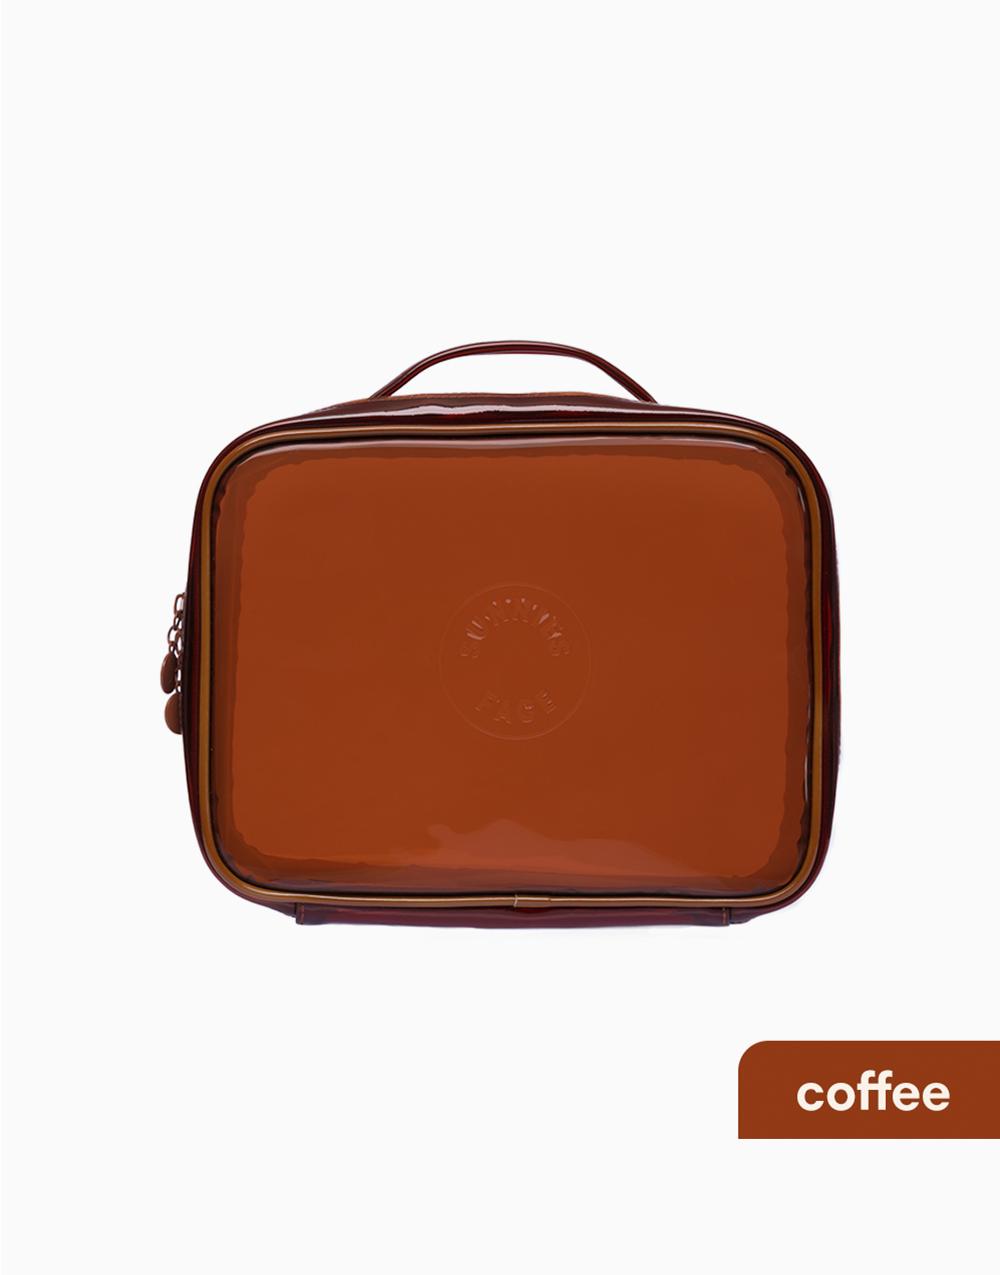 Sunnies Face Weekend Jelly Bag [Makeup Bag] (Coffee) by Sunnies Face